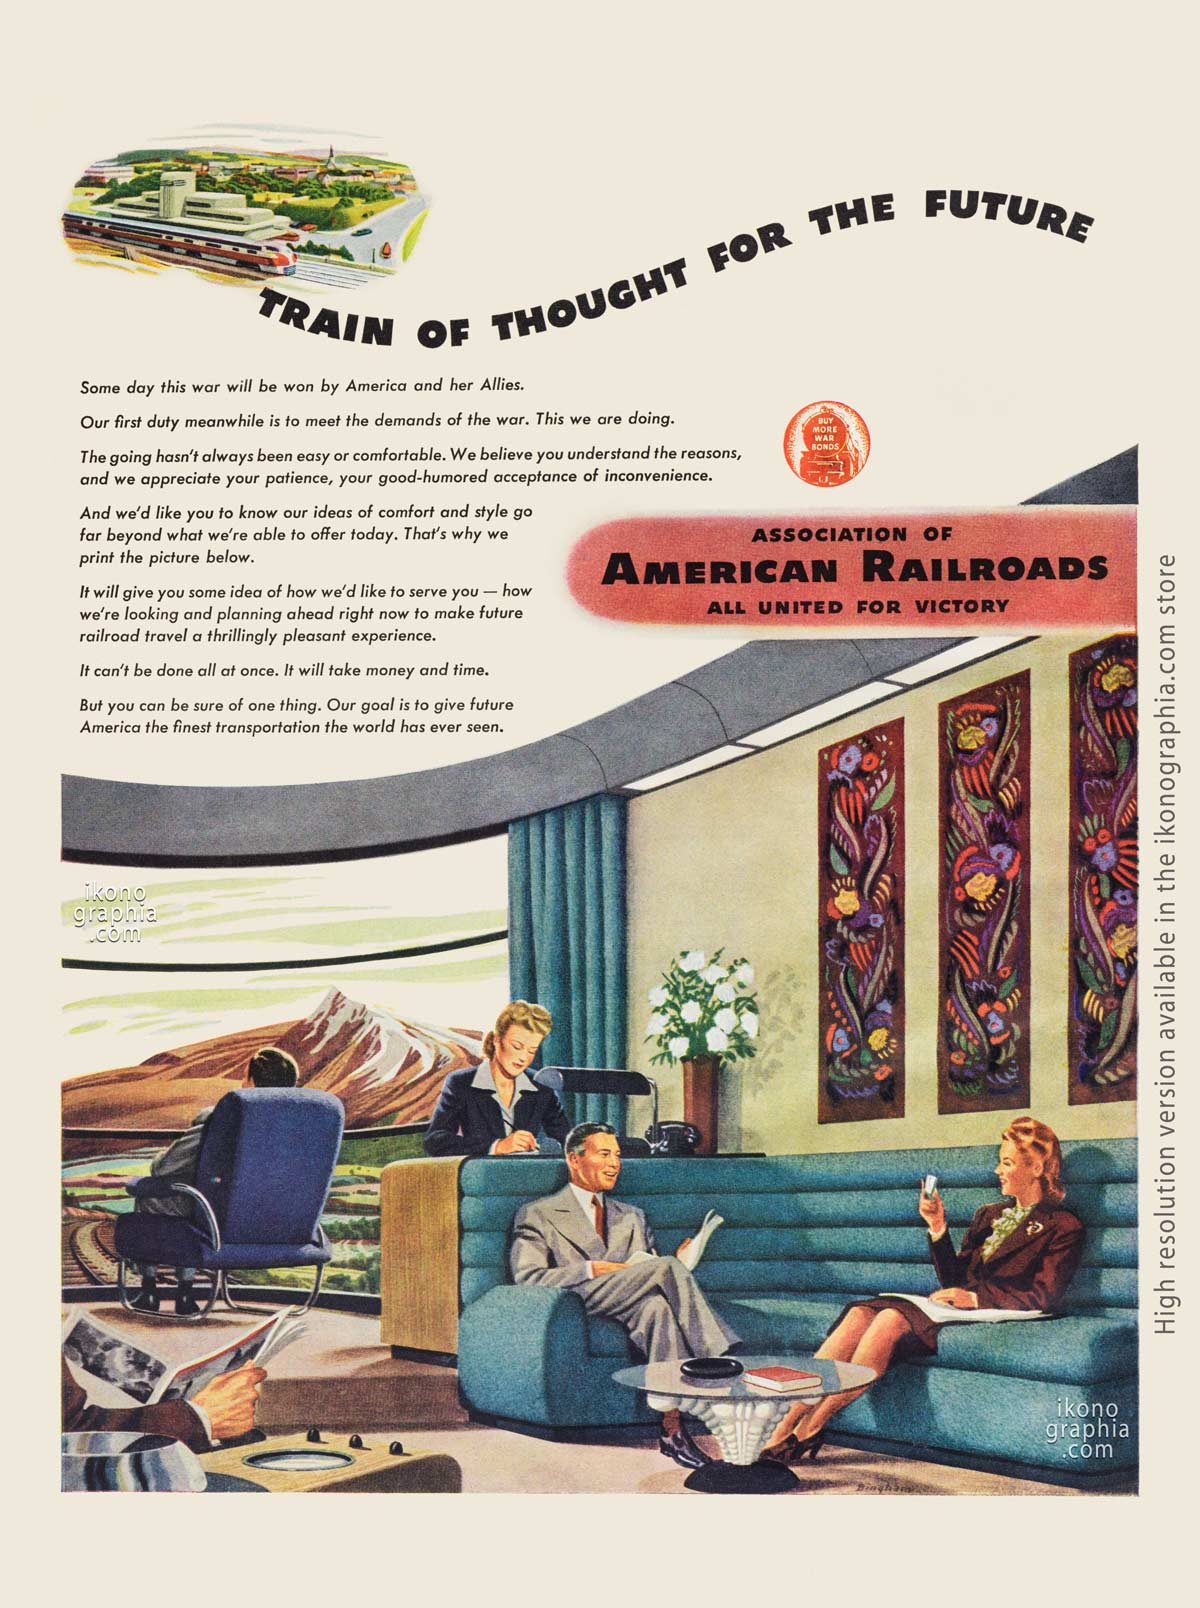 Trains of thought for the Future. American Railroads ad - Life. March 27, 1944